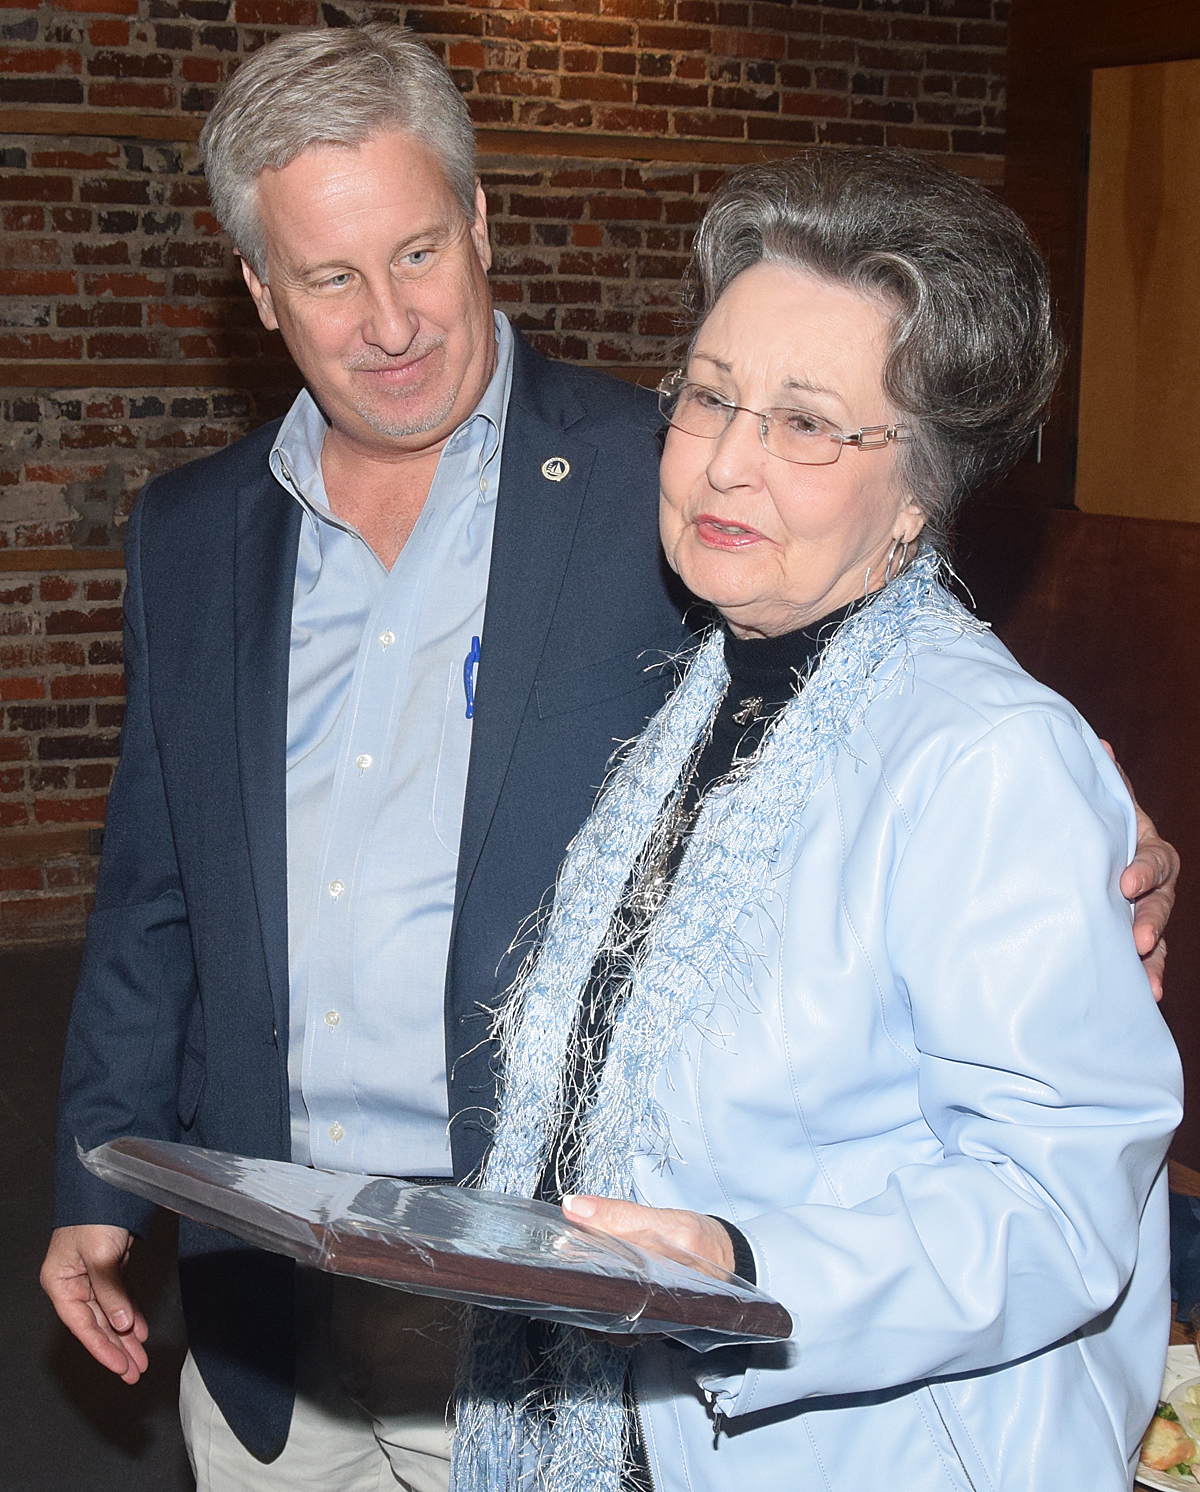 Tabor City Committee of 100 President Trent Burroughs with Martha Jo Garrell, wife of the late Jimmy Garrell, long-time chairman of the group